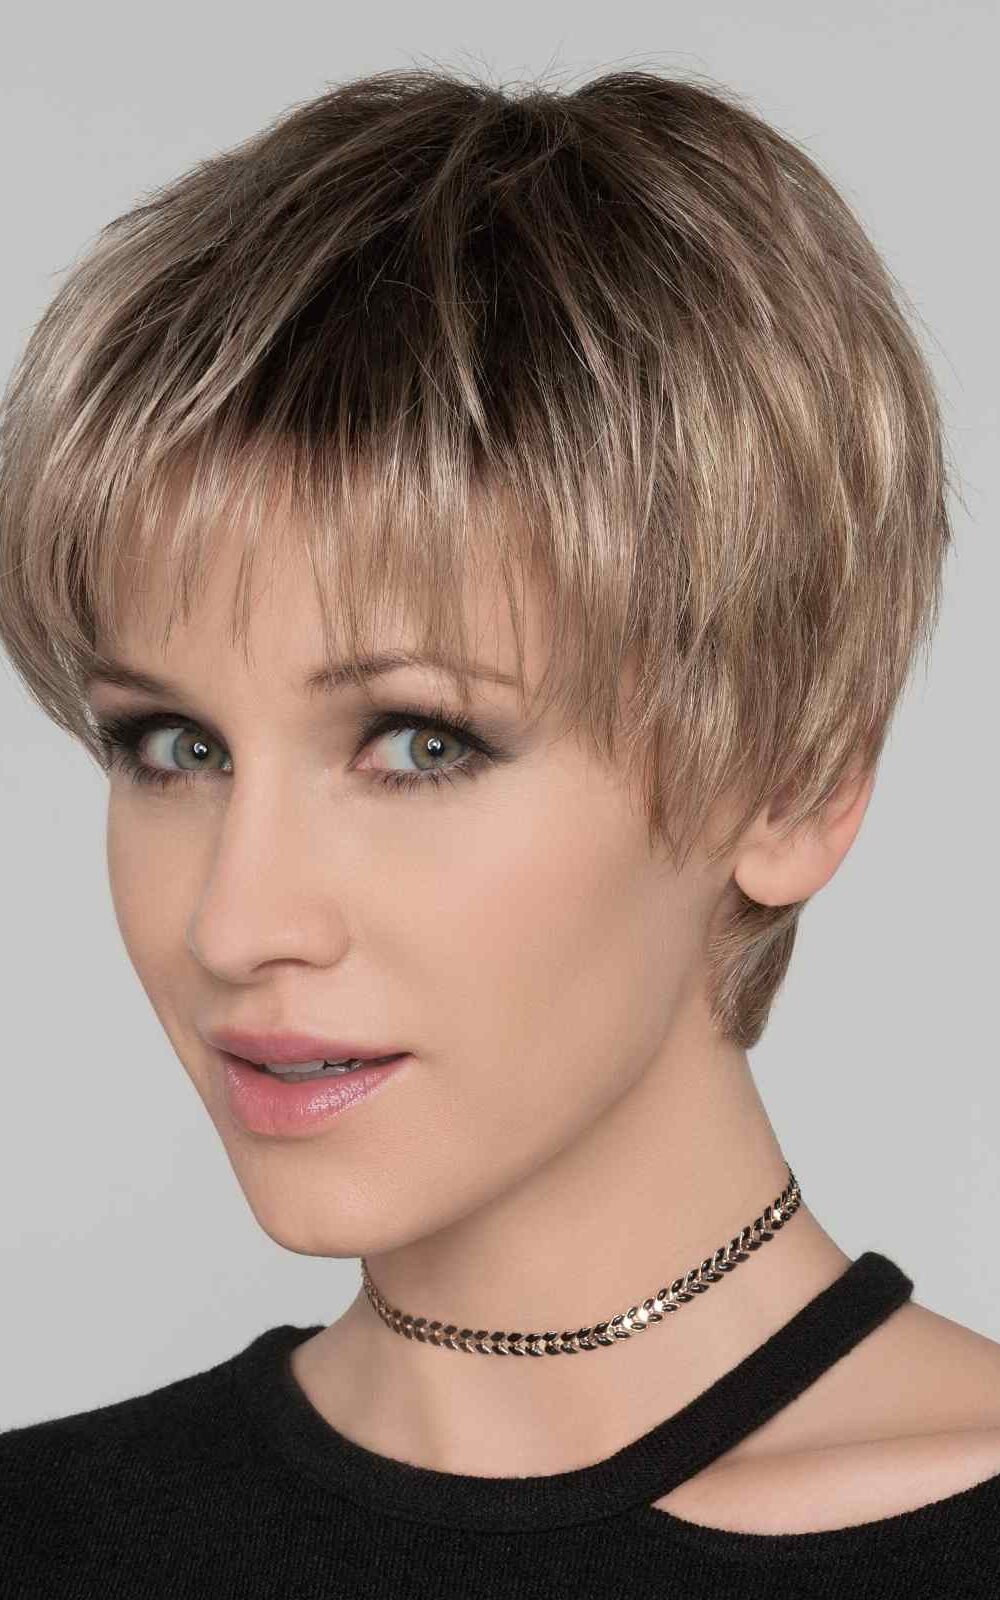 Stop Hi Tec   his look can be easily finger styled to fit a host of different looks. The monofilament top allows the longer front strands to be parted to the left, the right, or in the center.